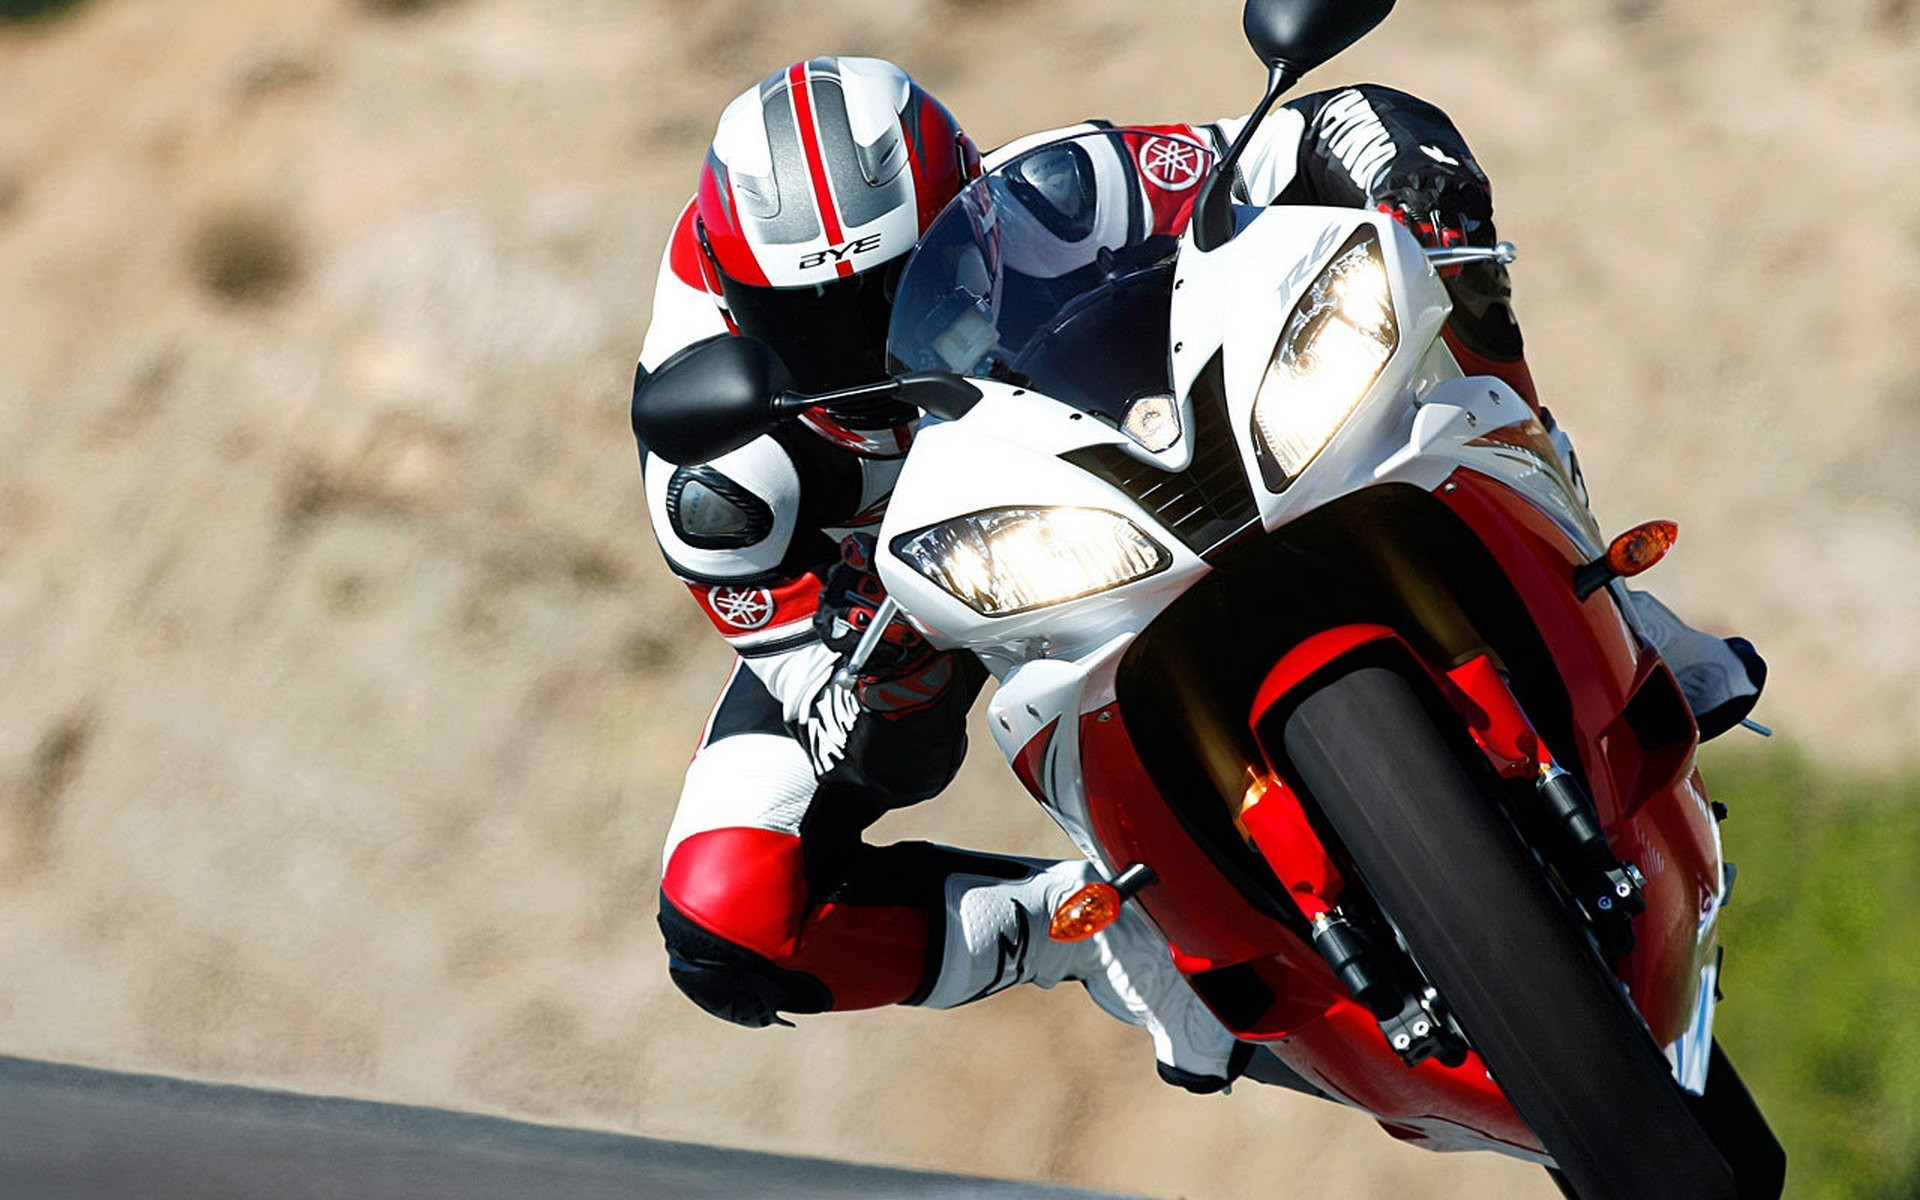 Biker Bikes Motorbikes Motorcycles Racer Wallpaper Allwallpaper In